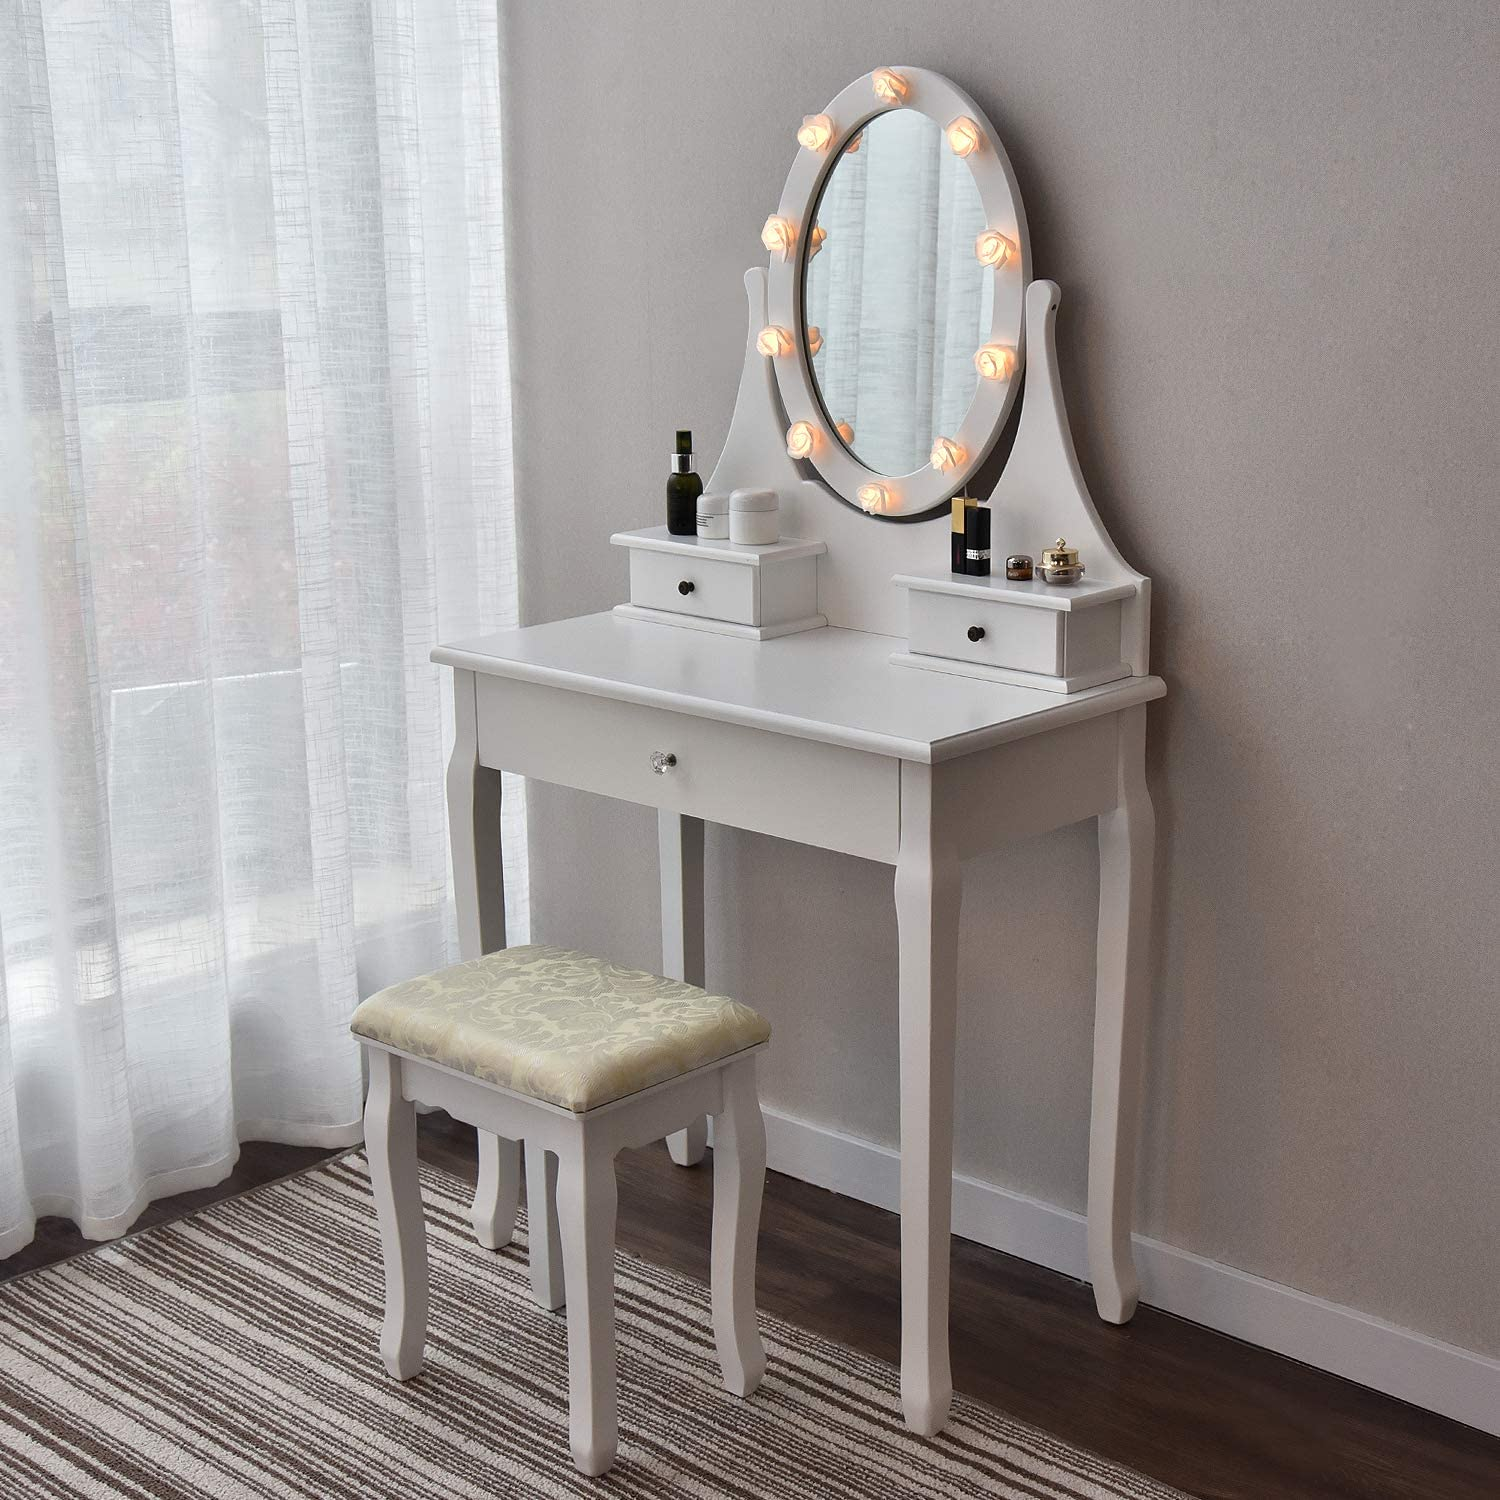 Makeup Vanity Table Set Mirror With Led Lights Dressing Table And Stool Set With Drawers Removable Top Organizer Multi Functional Writing Desk Padded Stool Large Bedroom Vanities Tables With Benches Kitchen